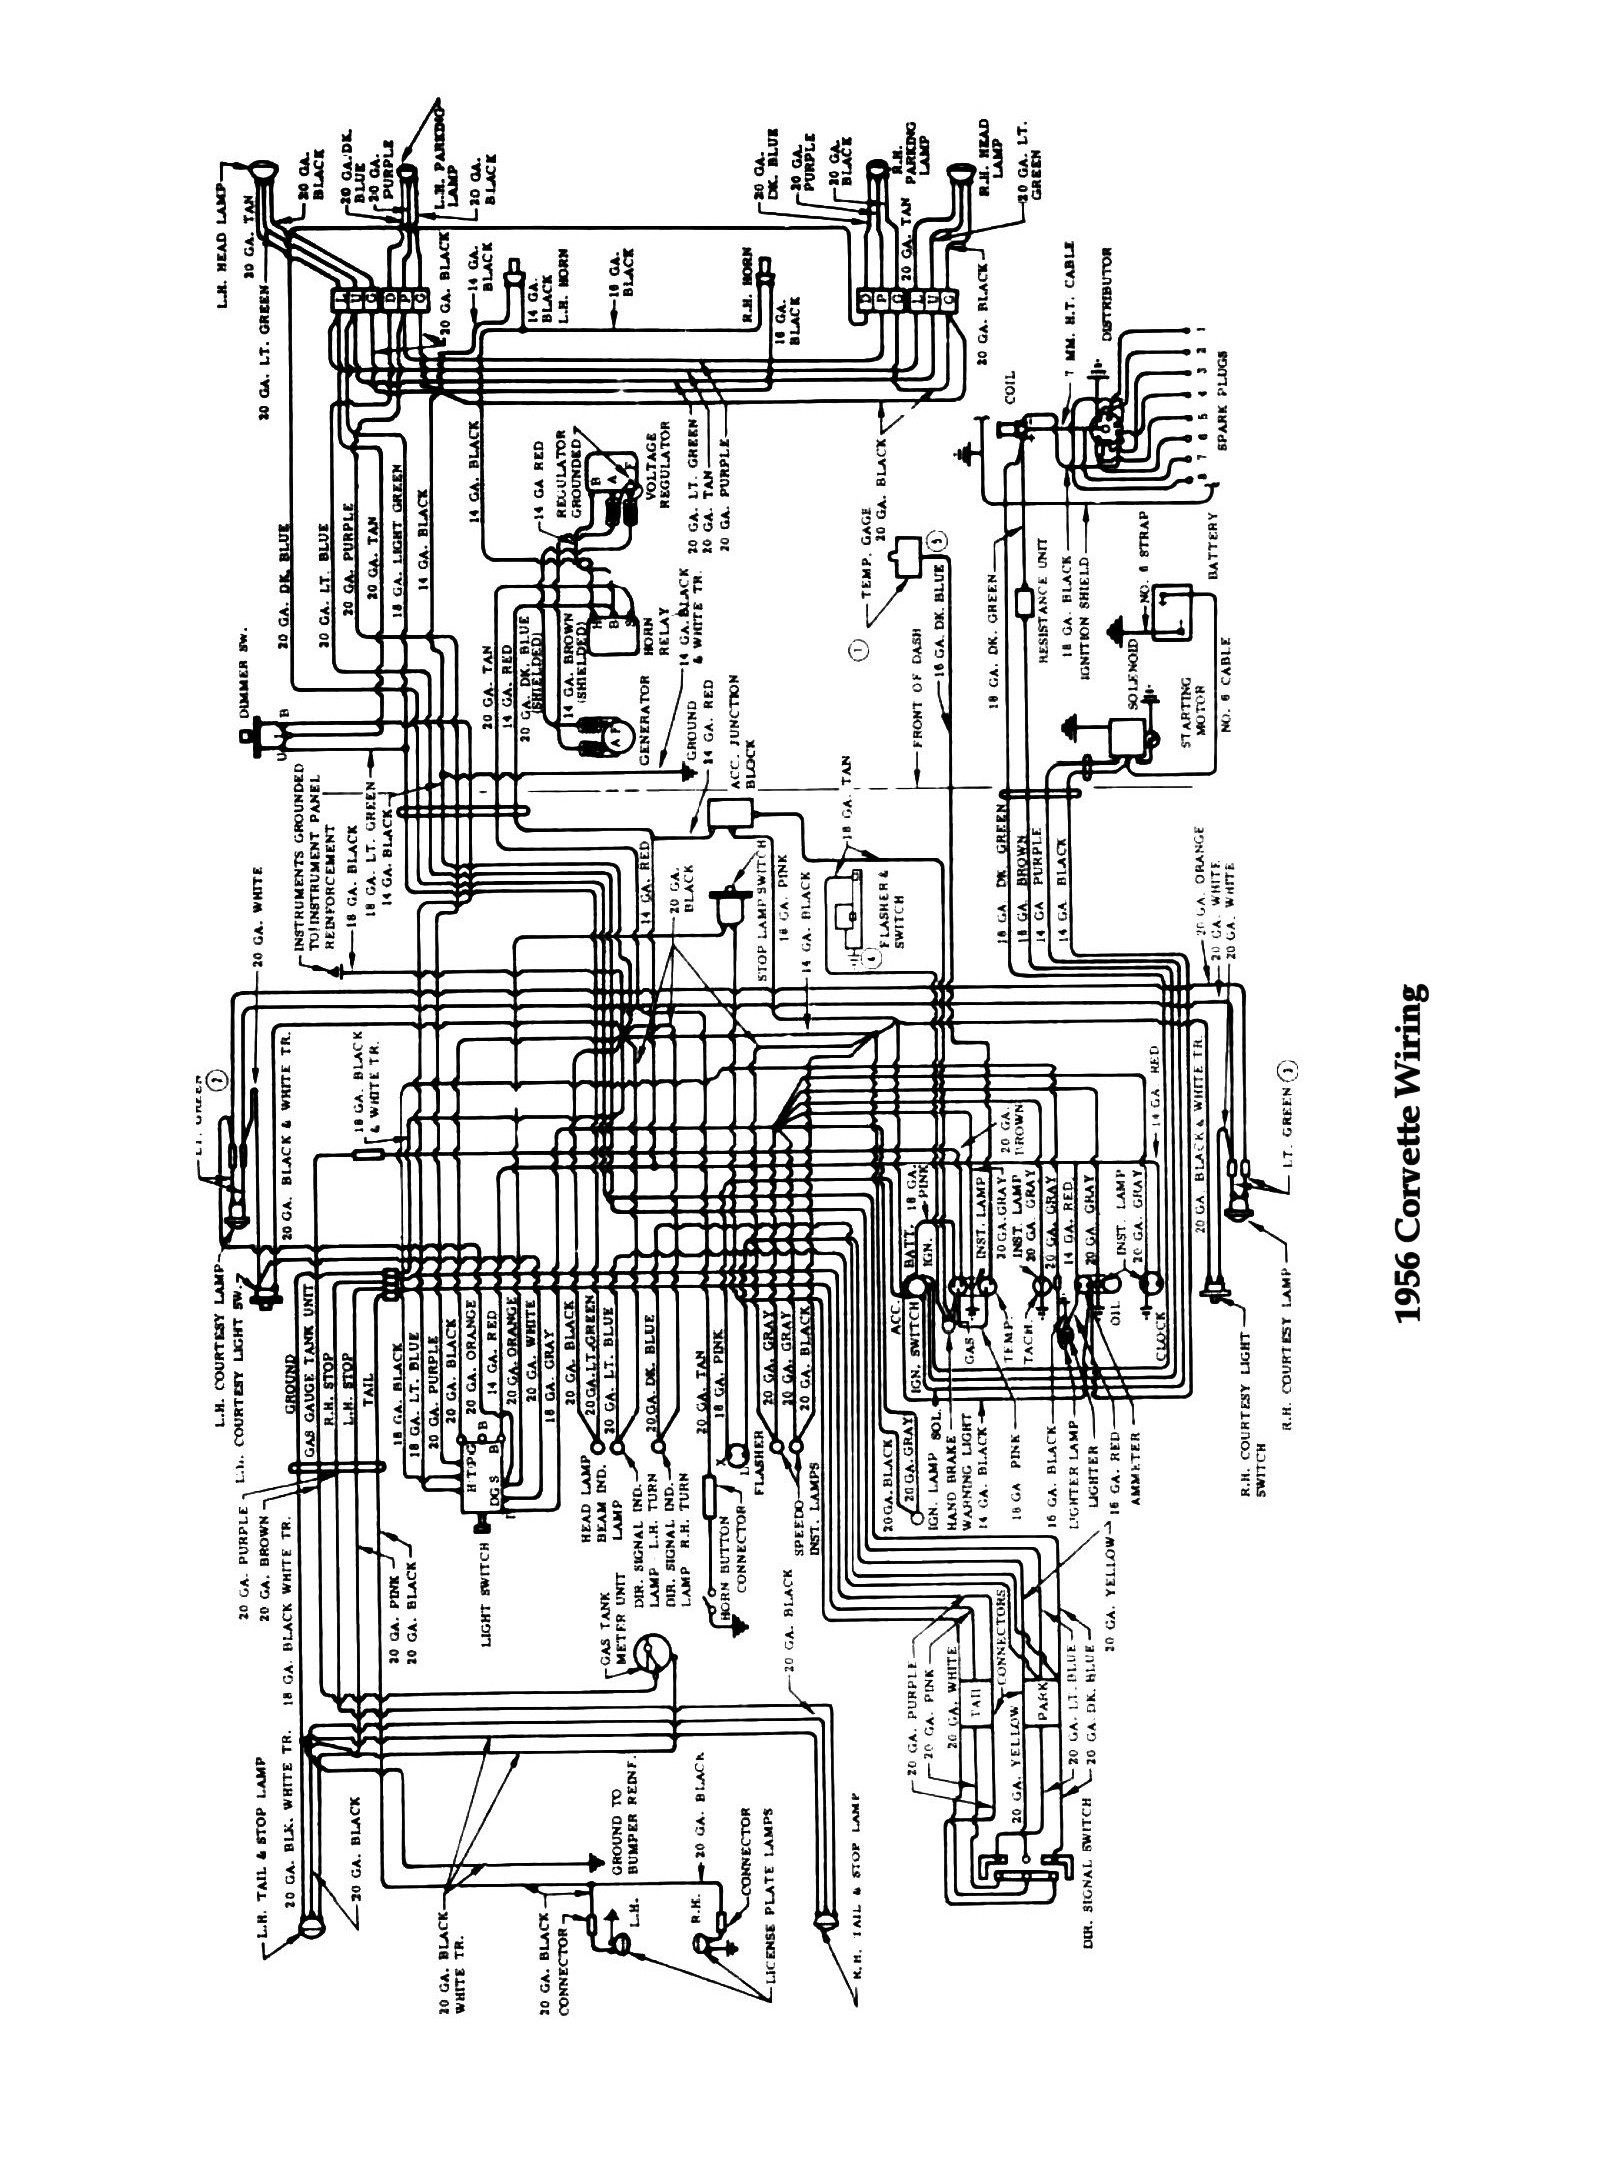 56corvette chevy wiring diagrams on c1 corvette wiring diagram